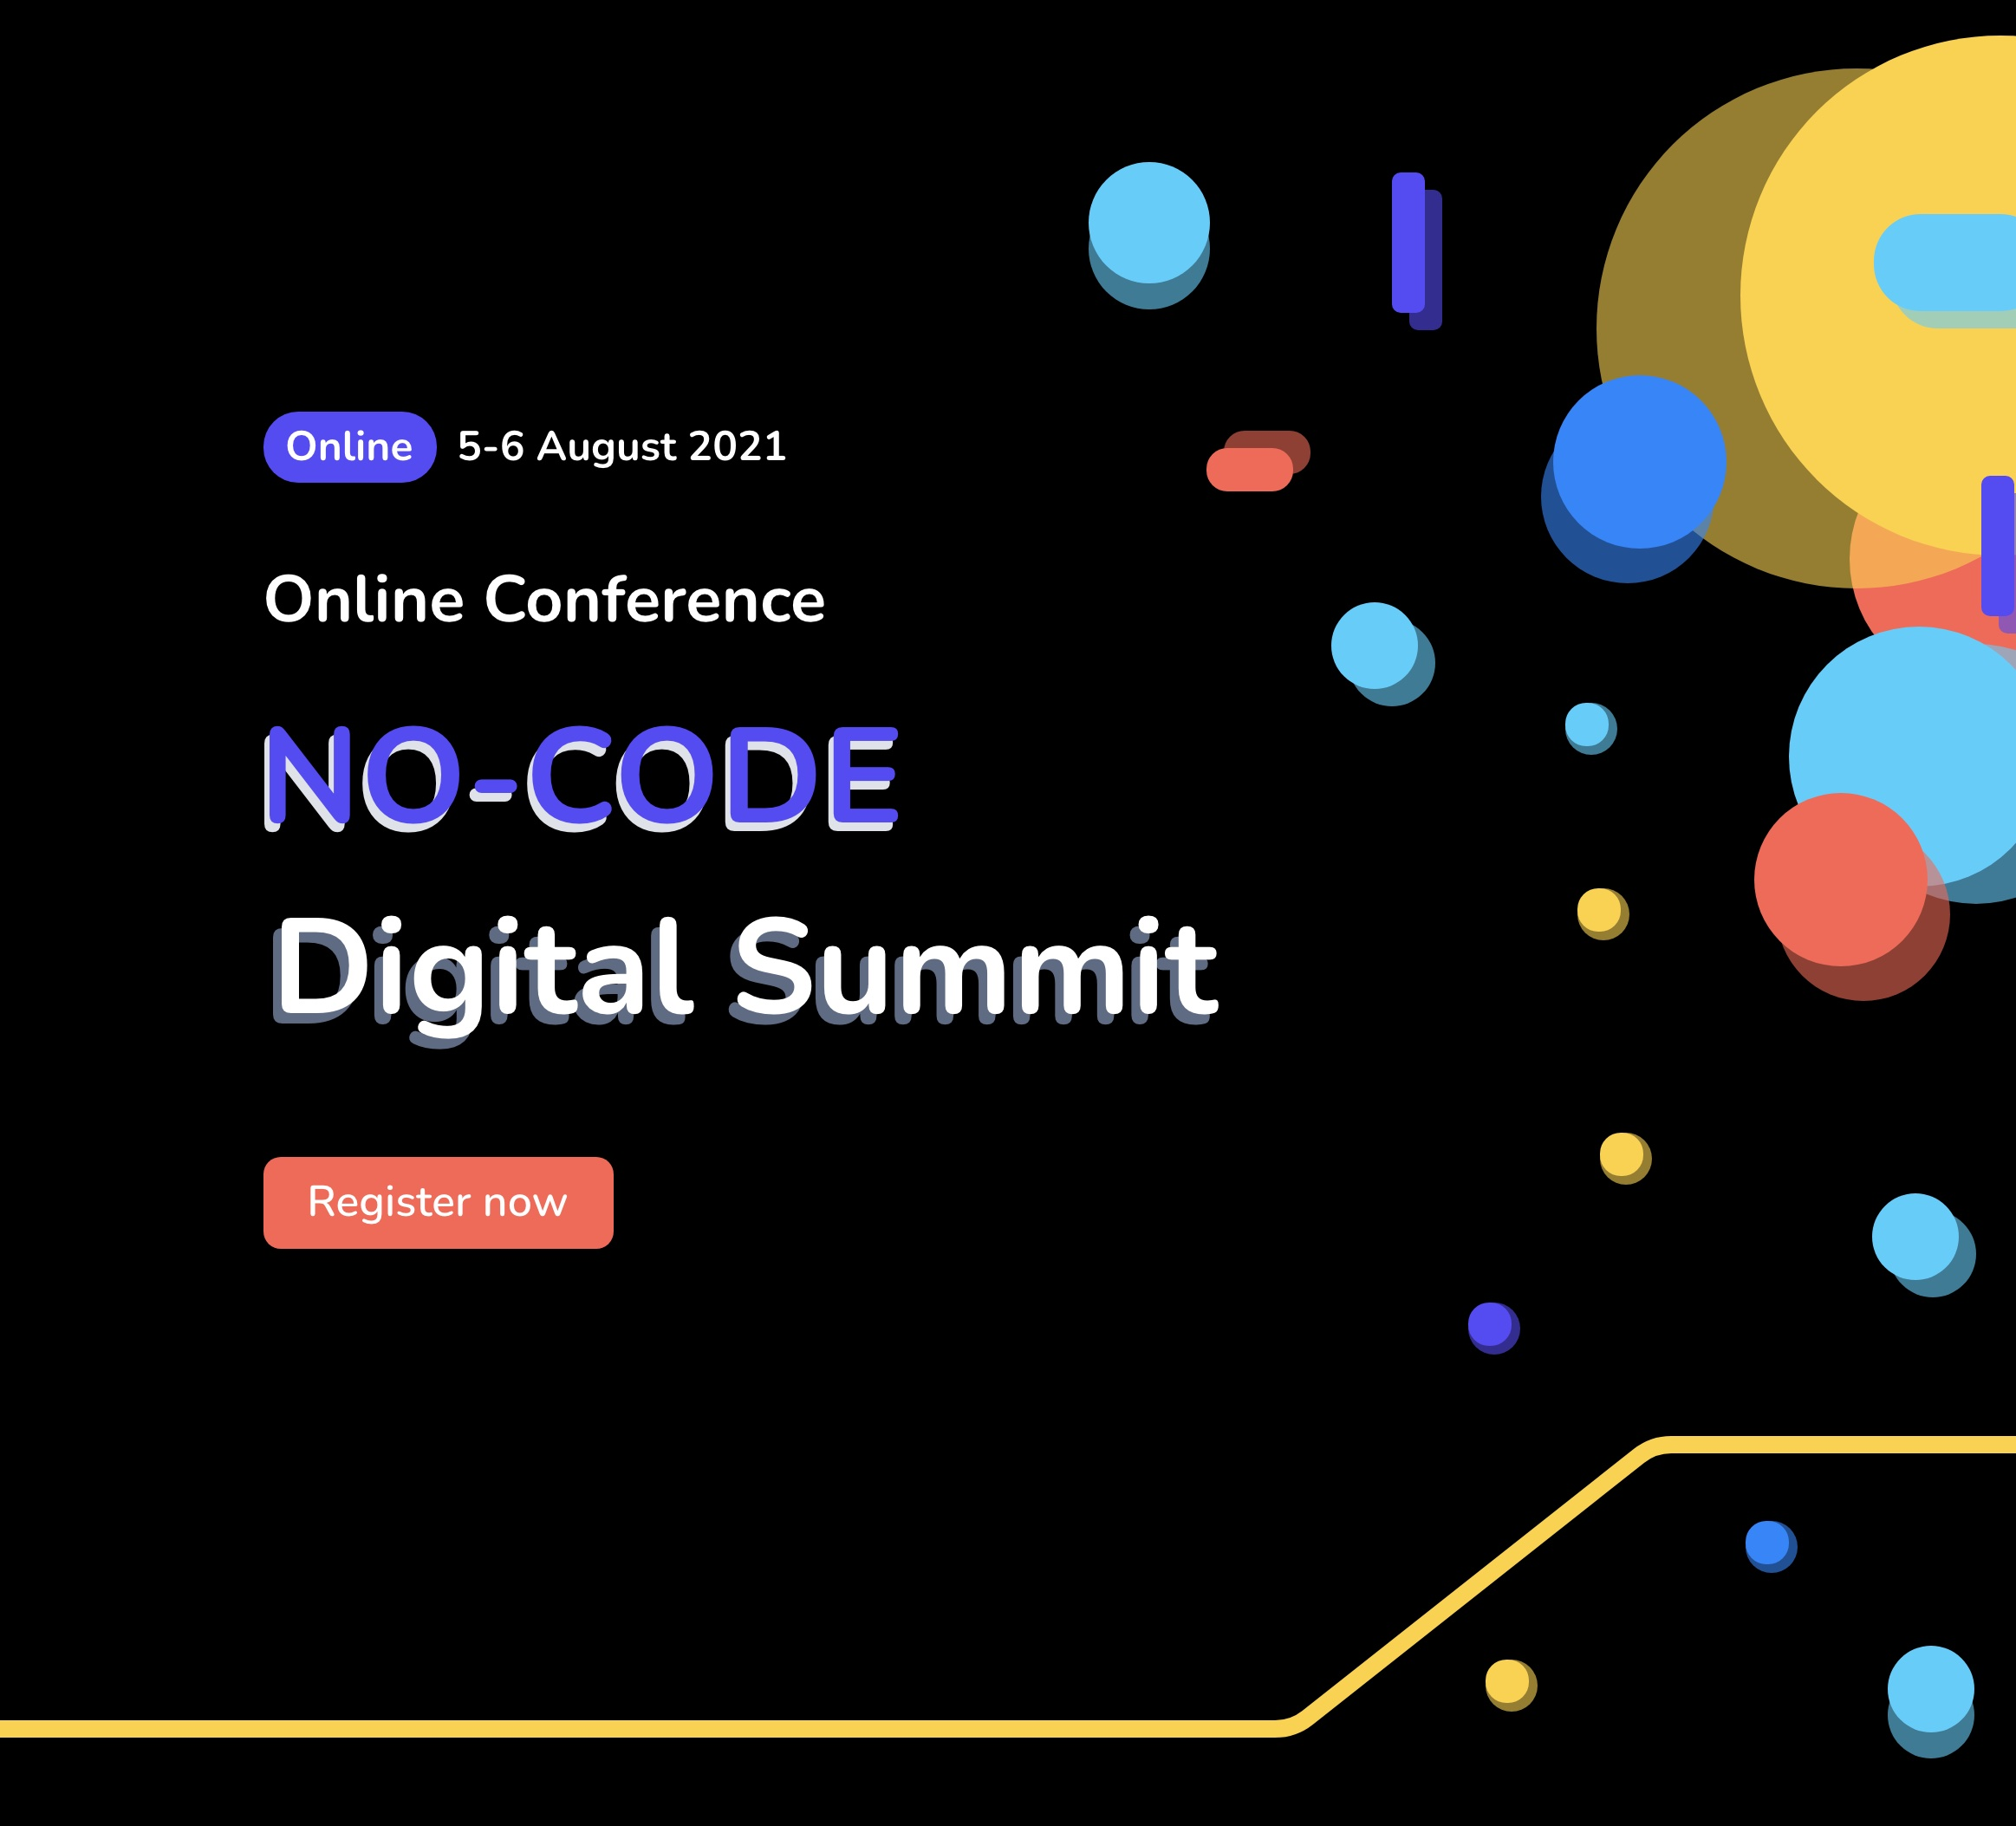 World No-Code Digital Summit will be held on August 5-6